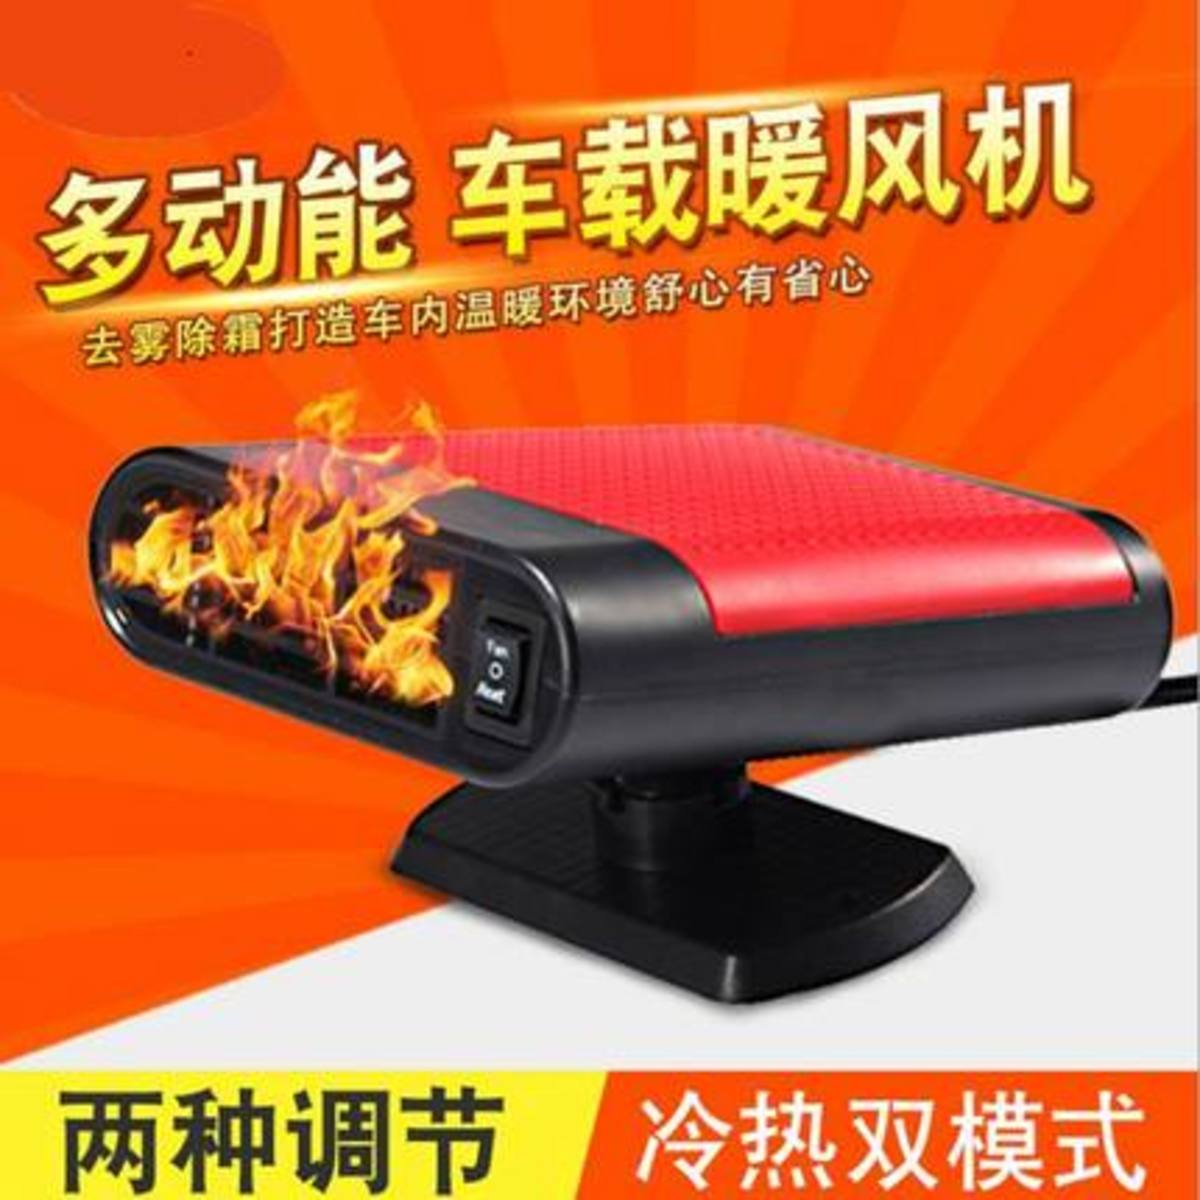 12v plug-in car heater for your car